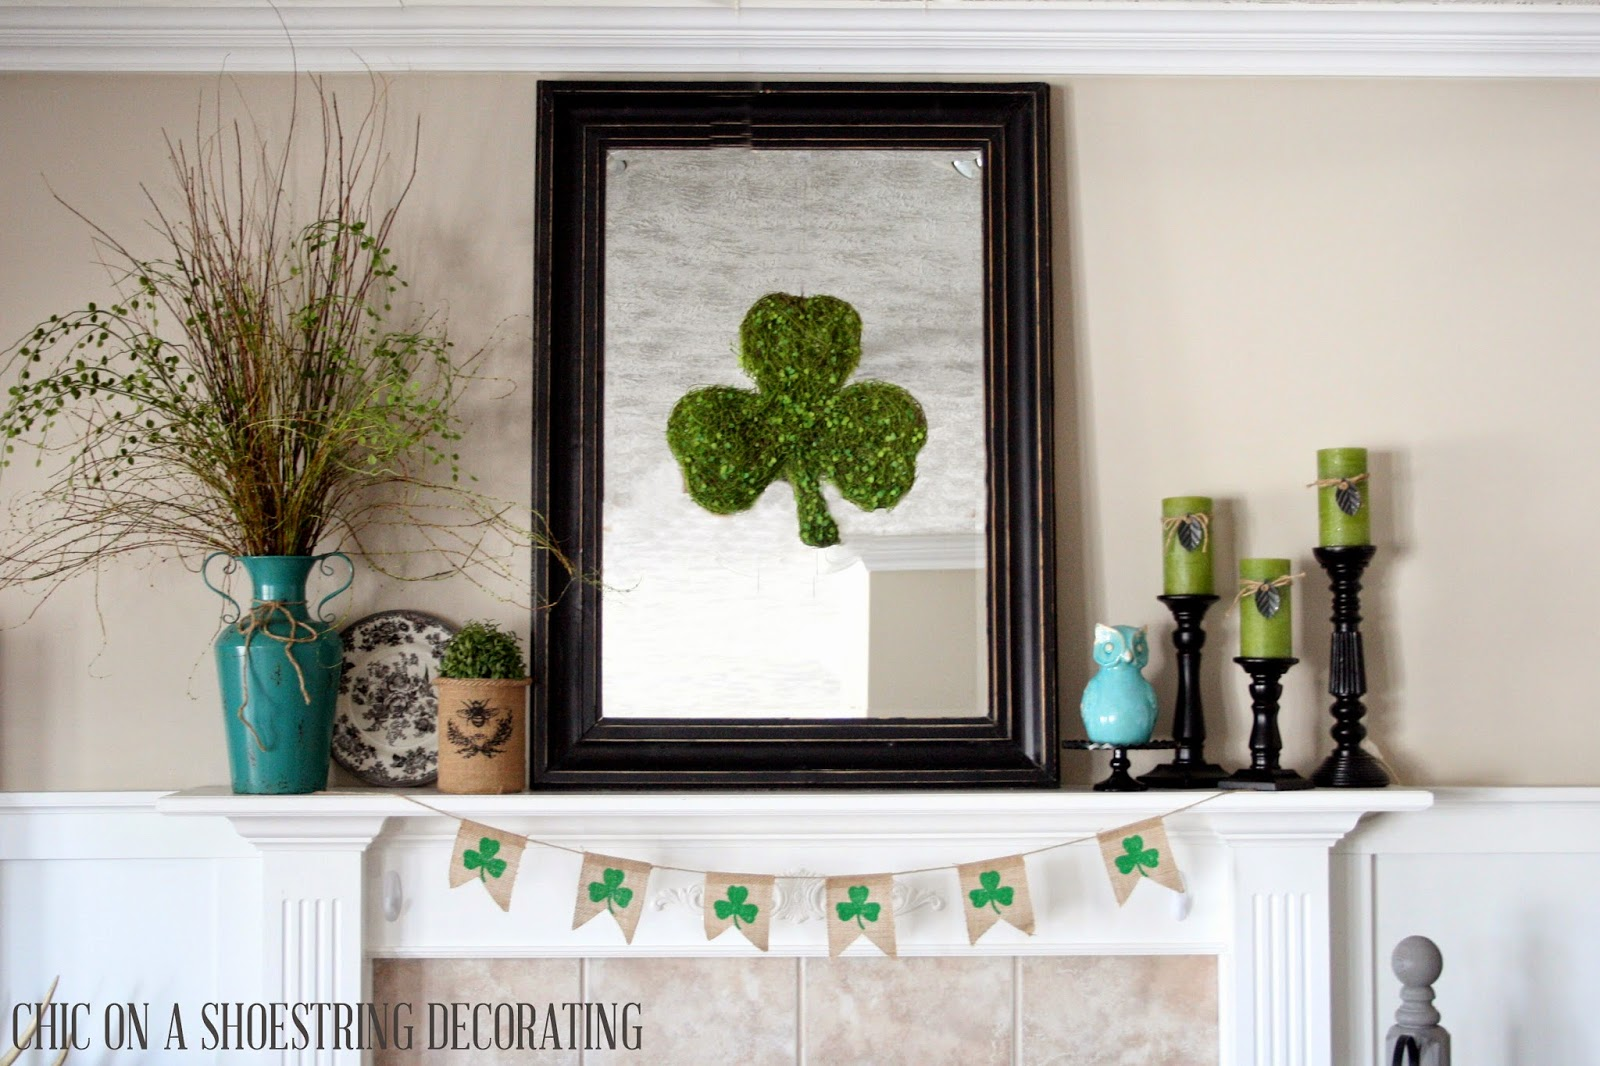 chic on a shoestring decorating: easy st. patrick's day decor